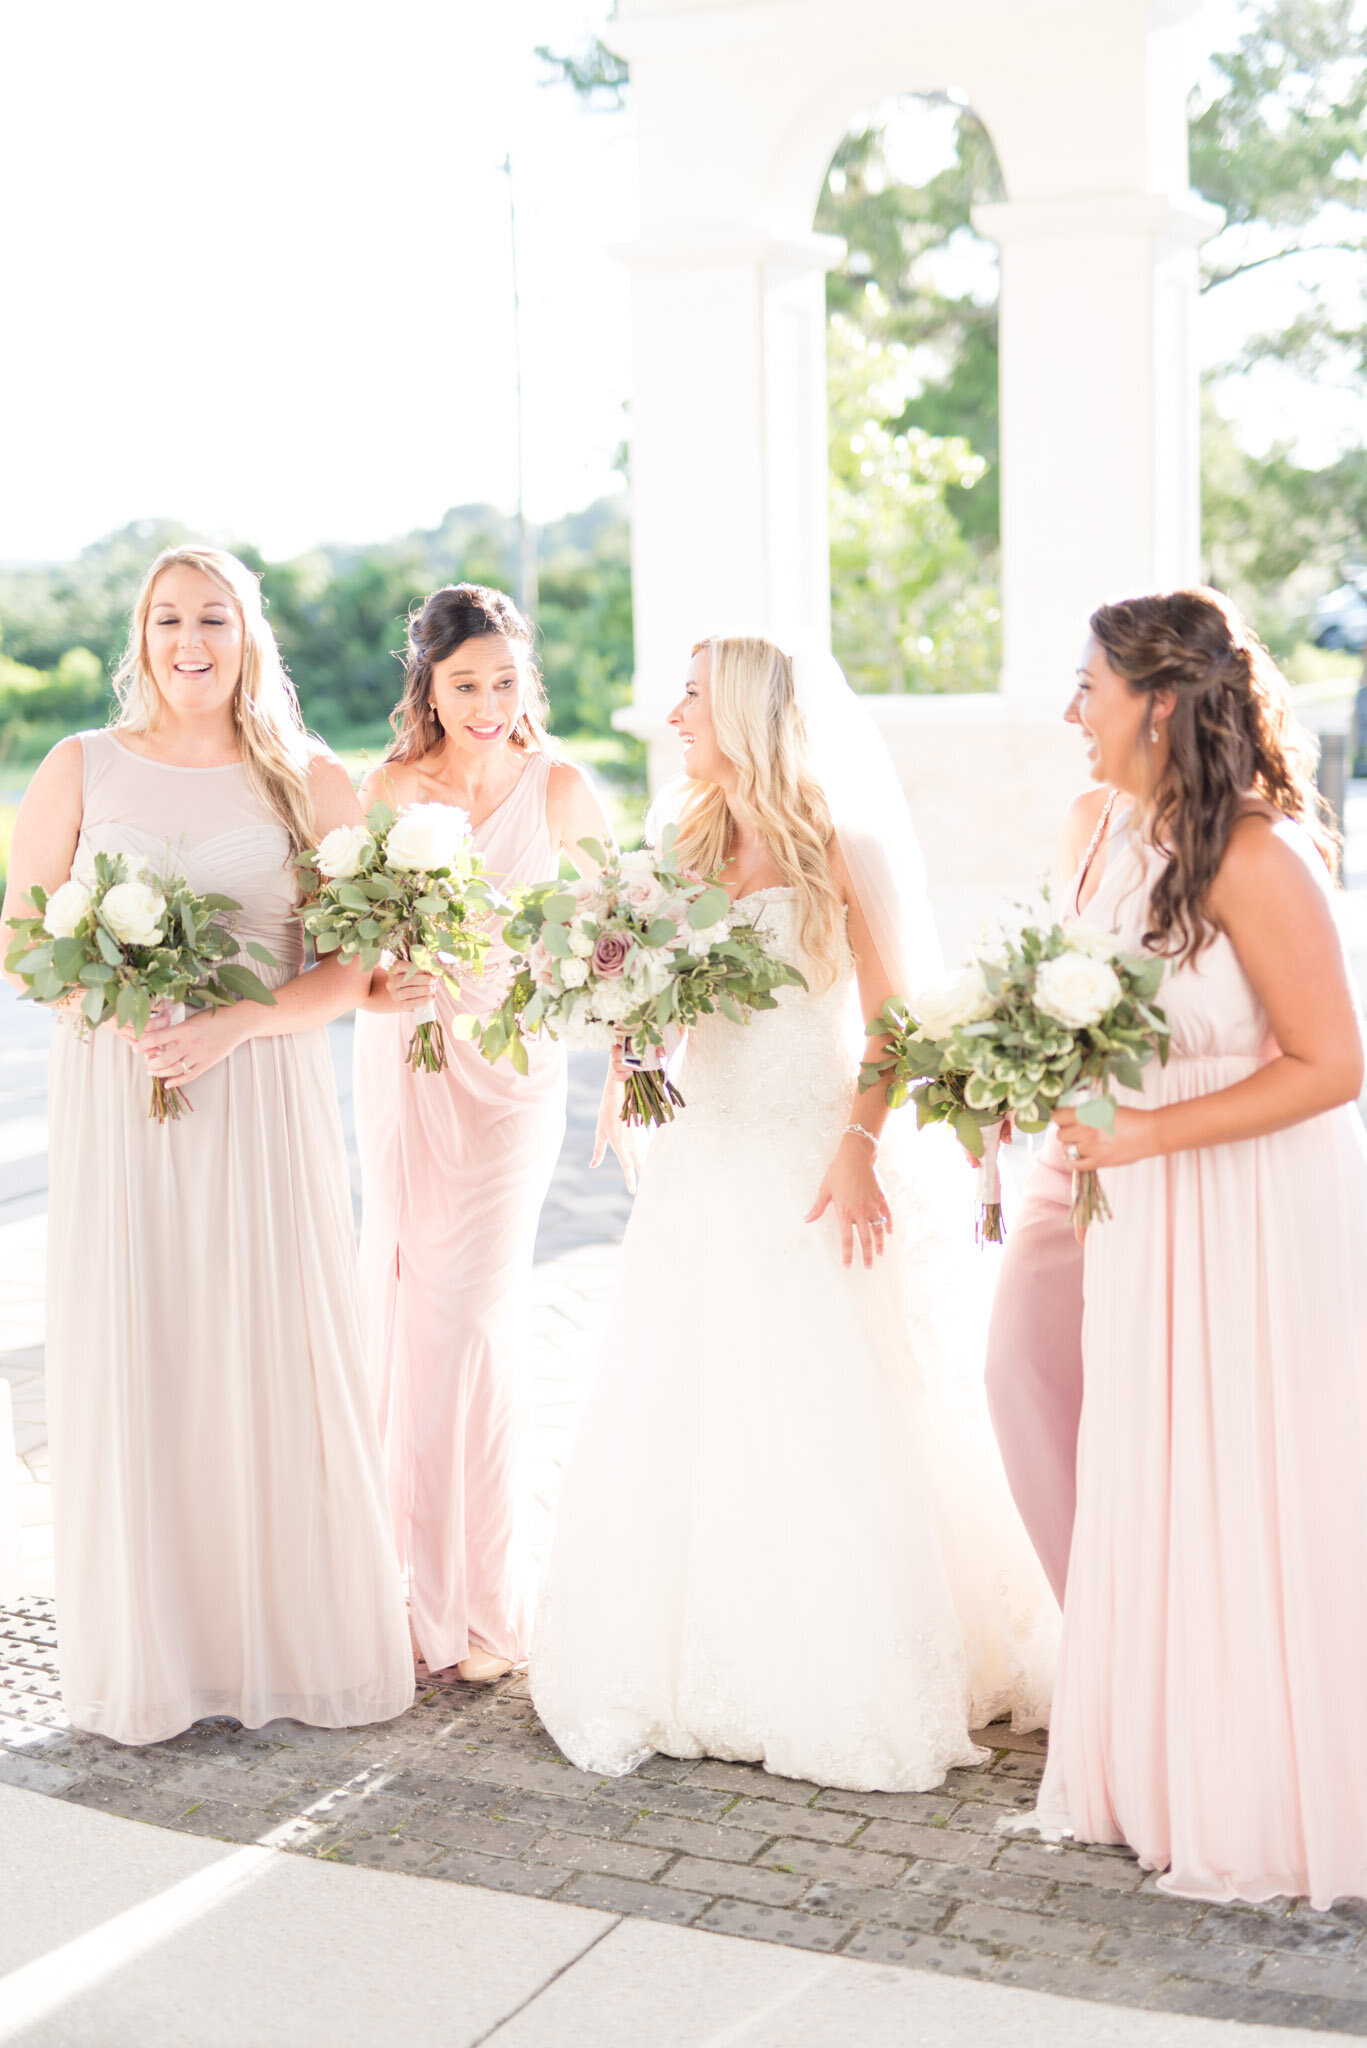 Birmingham-Wedding-Photographer-Blush 0011